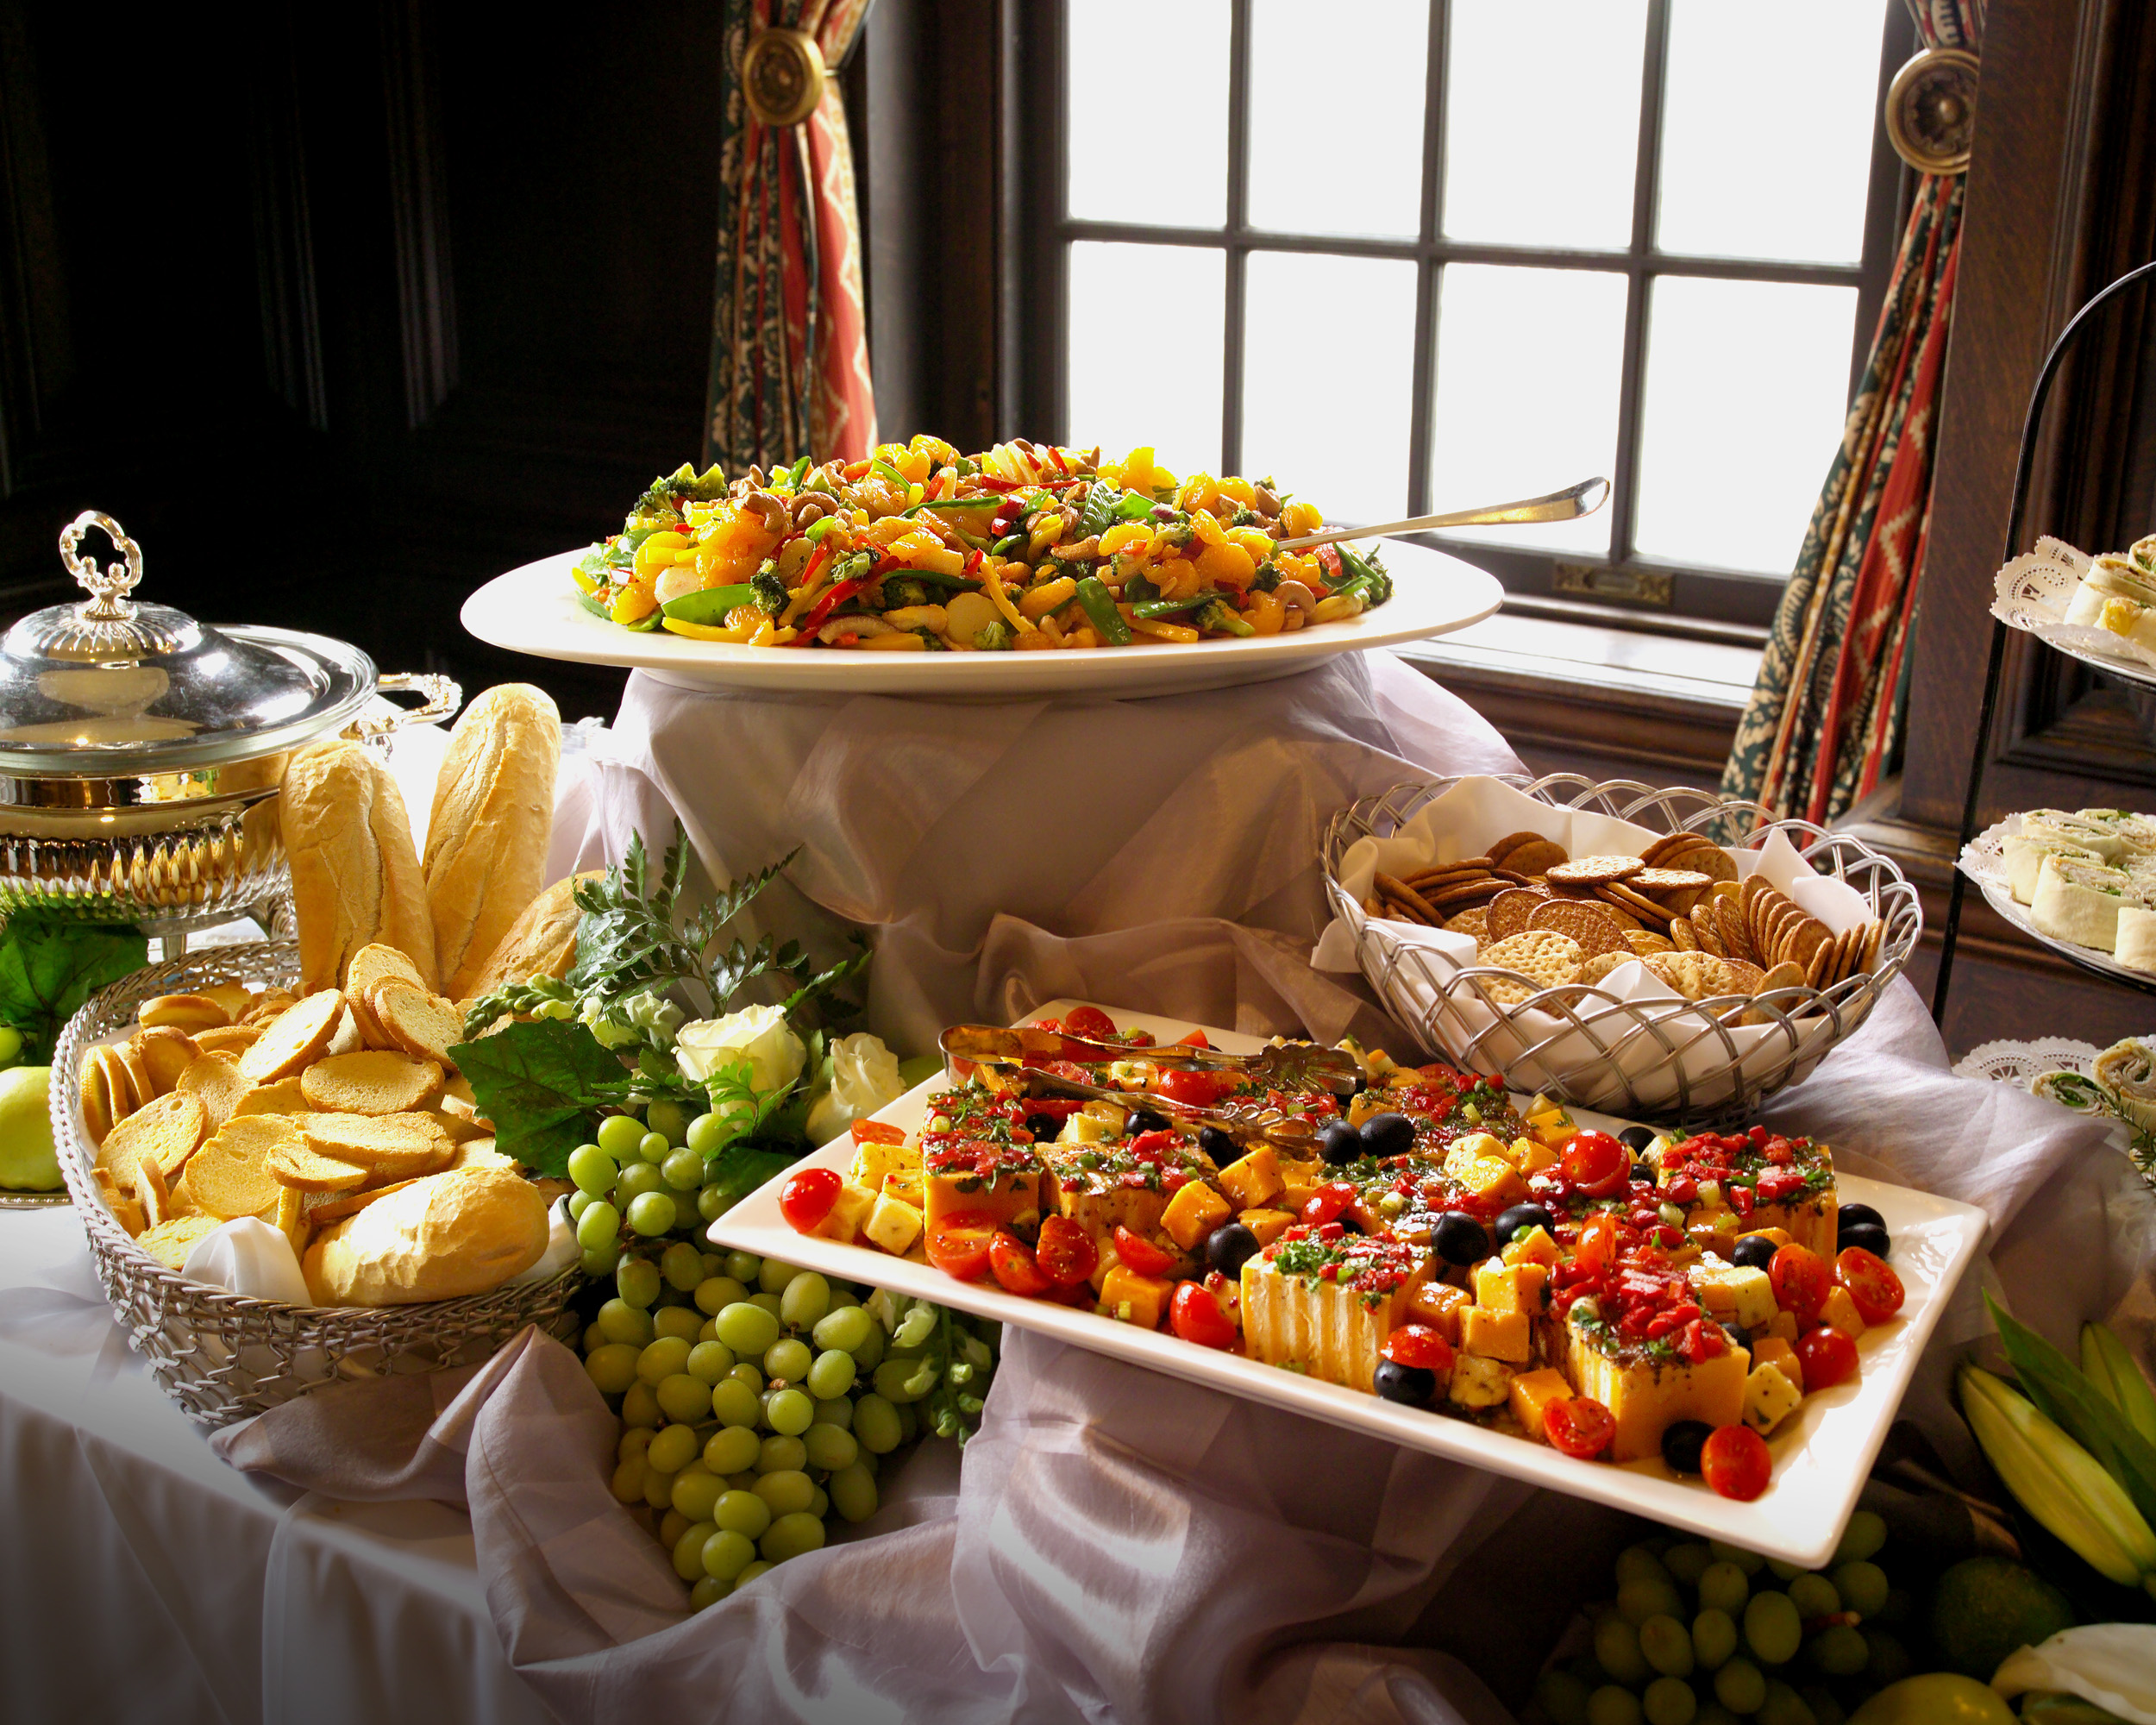 Dining - Catering